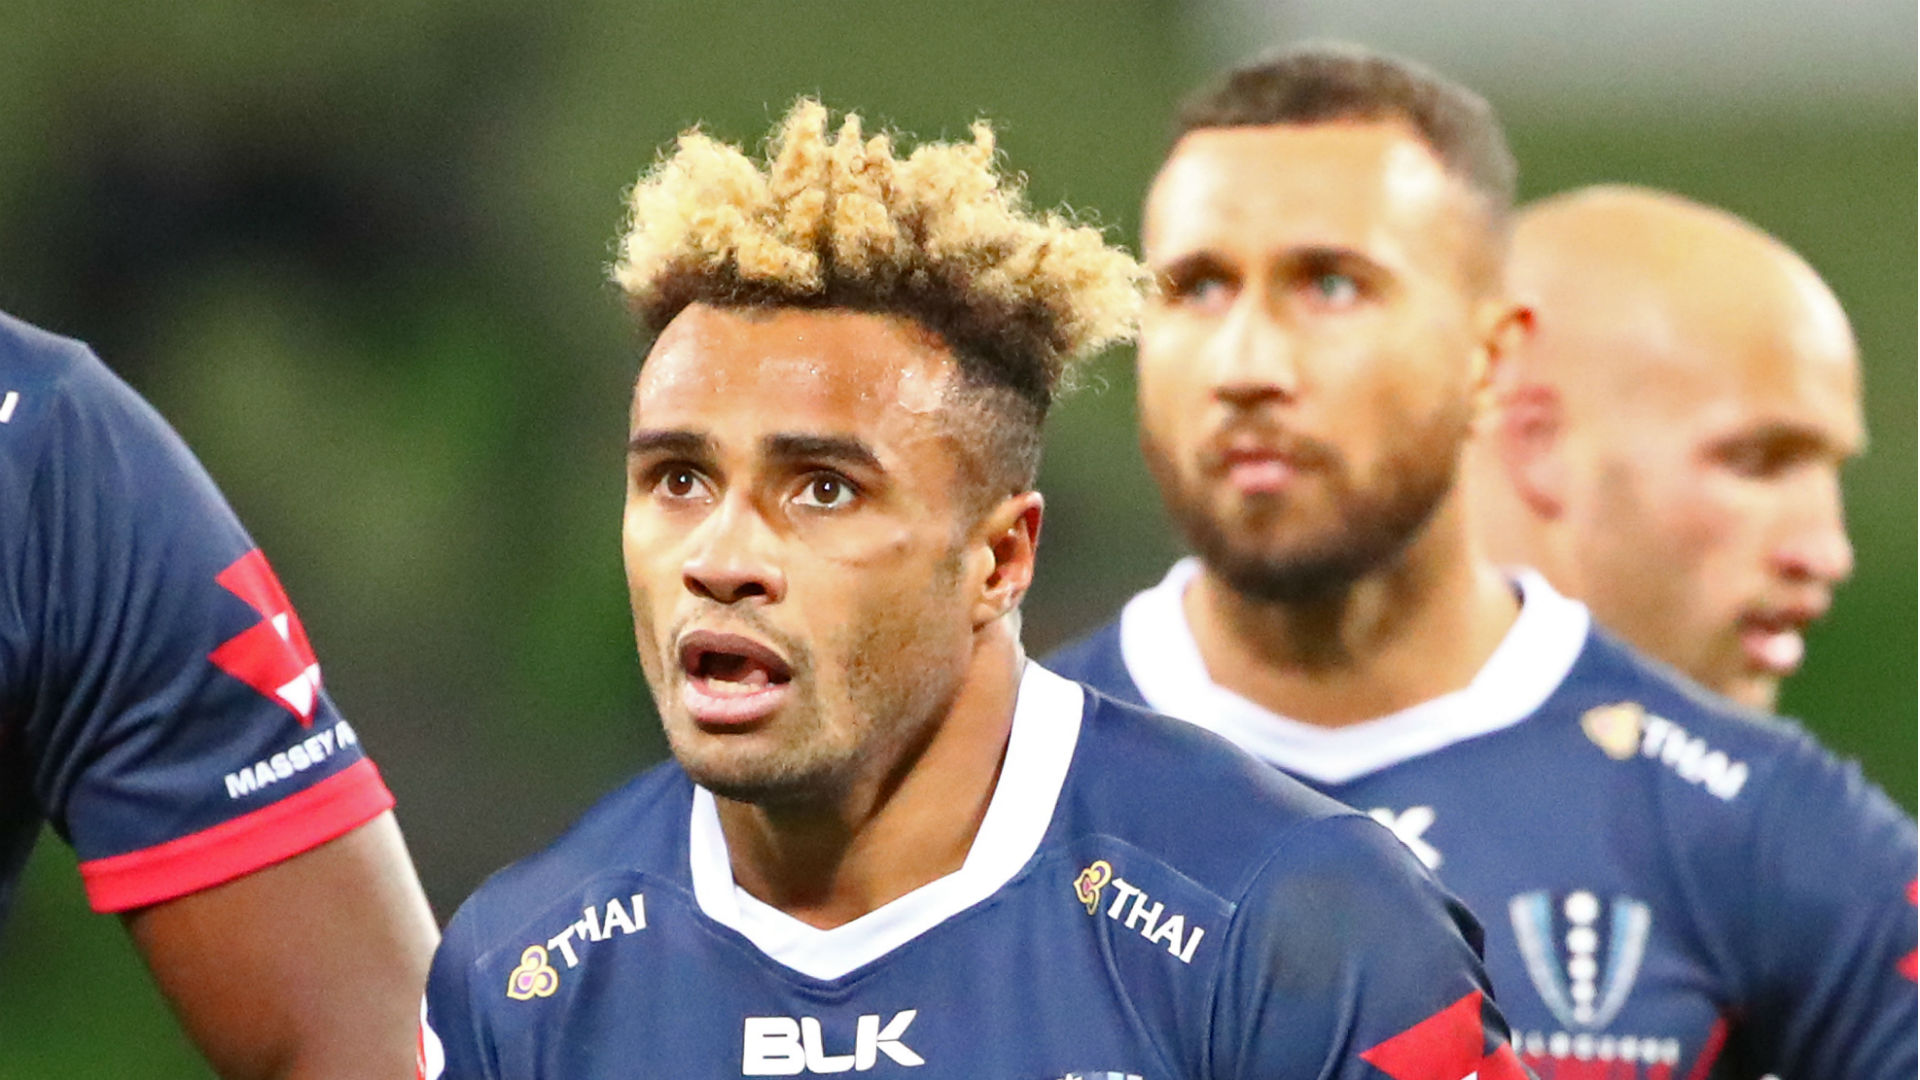 Kintetsu Liners have bolstered their ranks with the signings of Australia duo Will Genia and Quade Cooper.